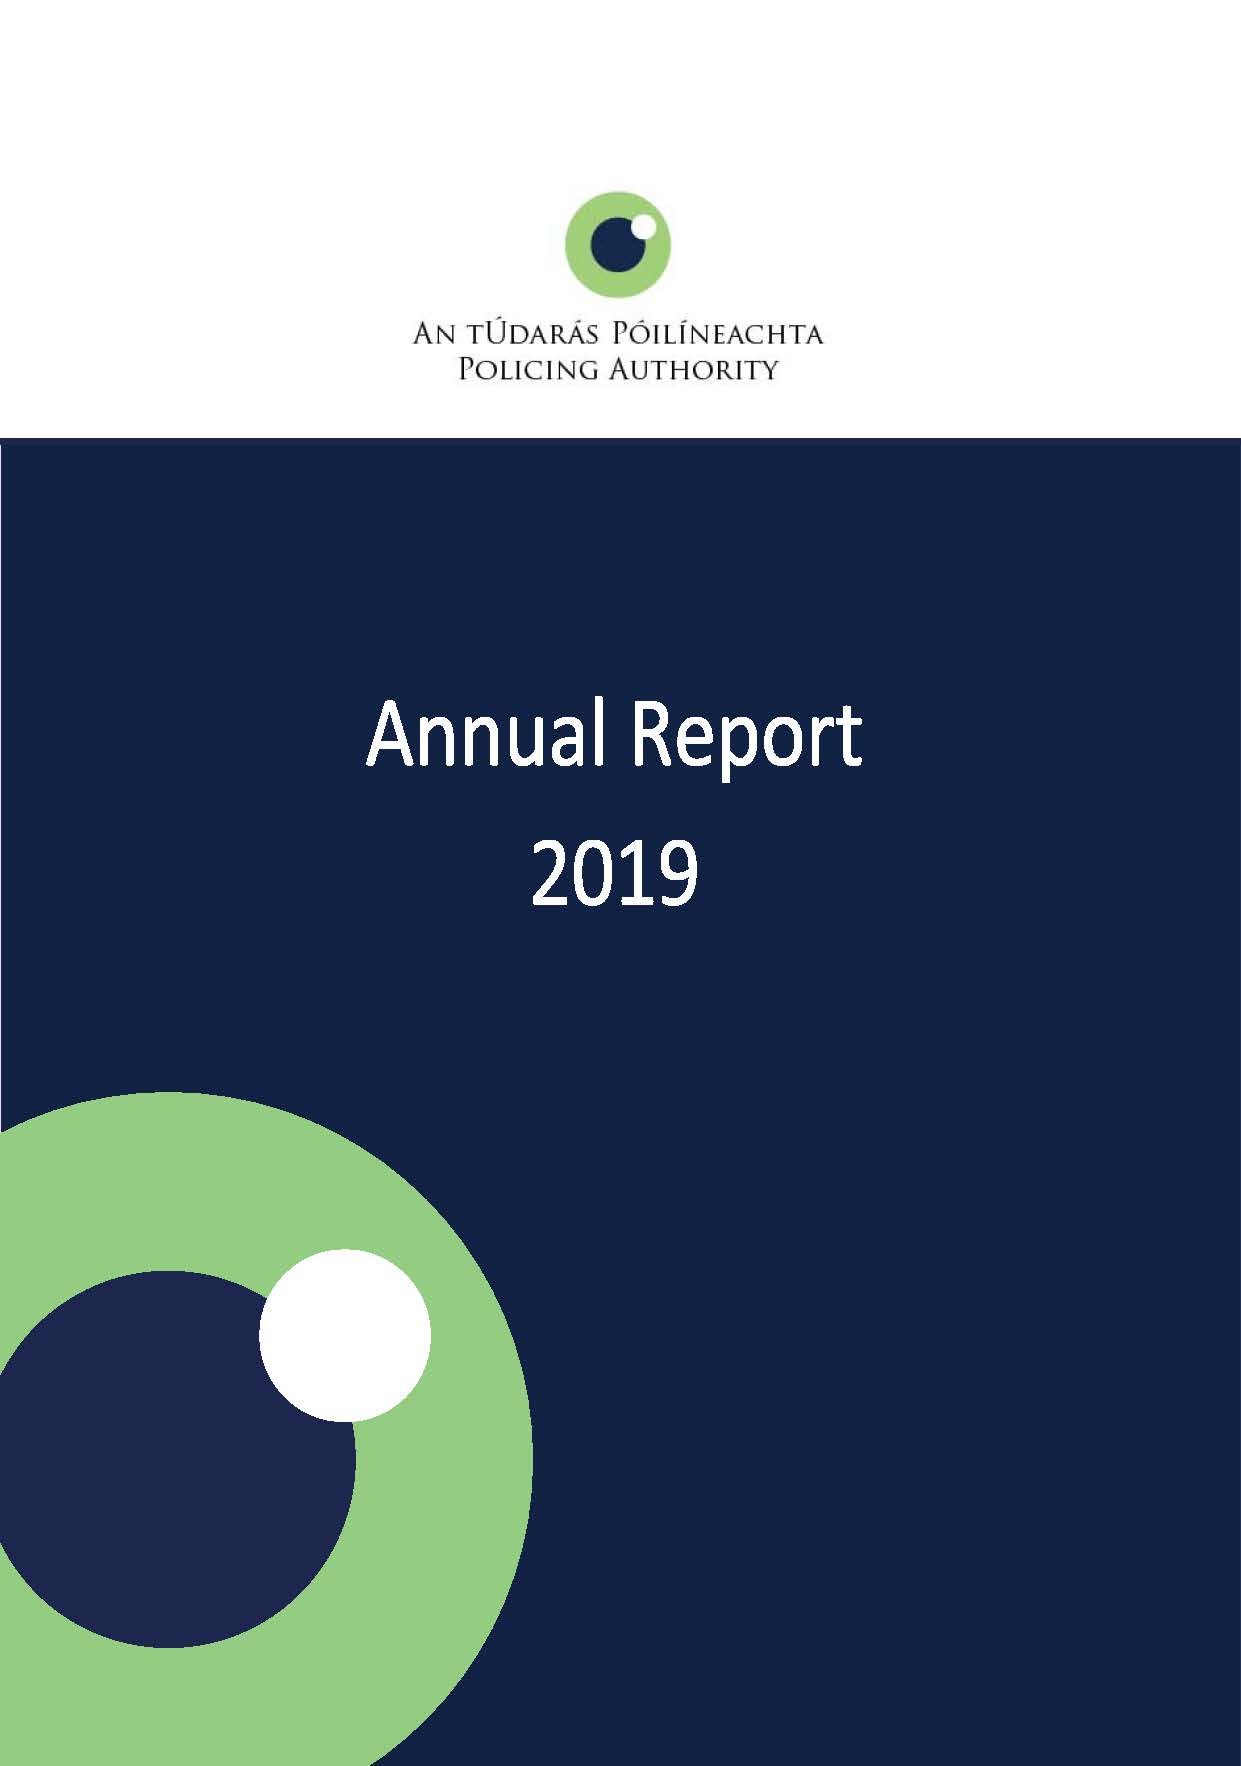 Policing Authority Annual Report 2019